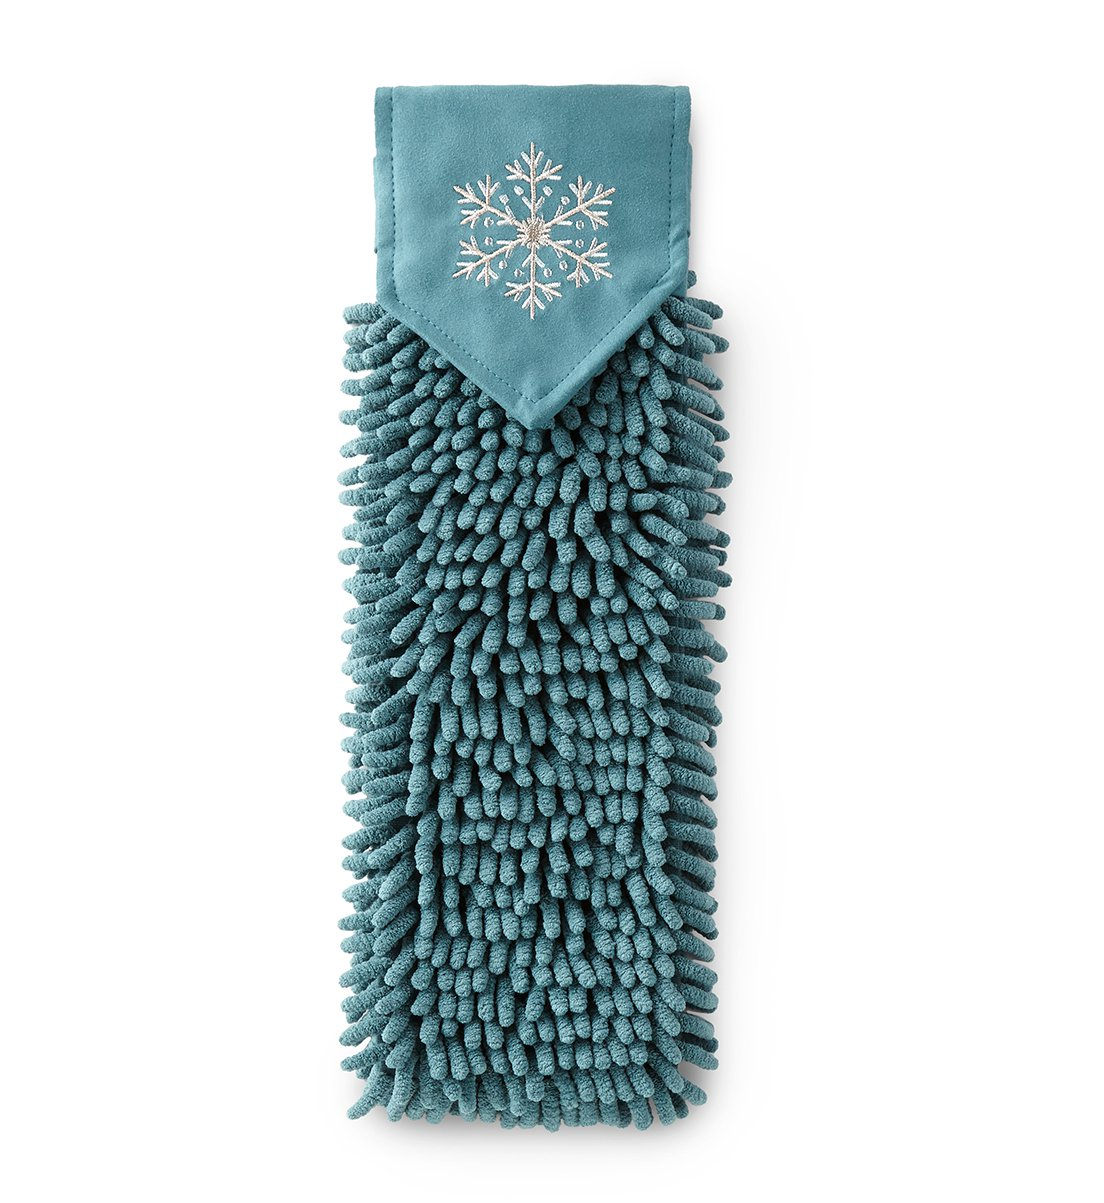 Snowflake Chenille Hand Towel, teal